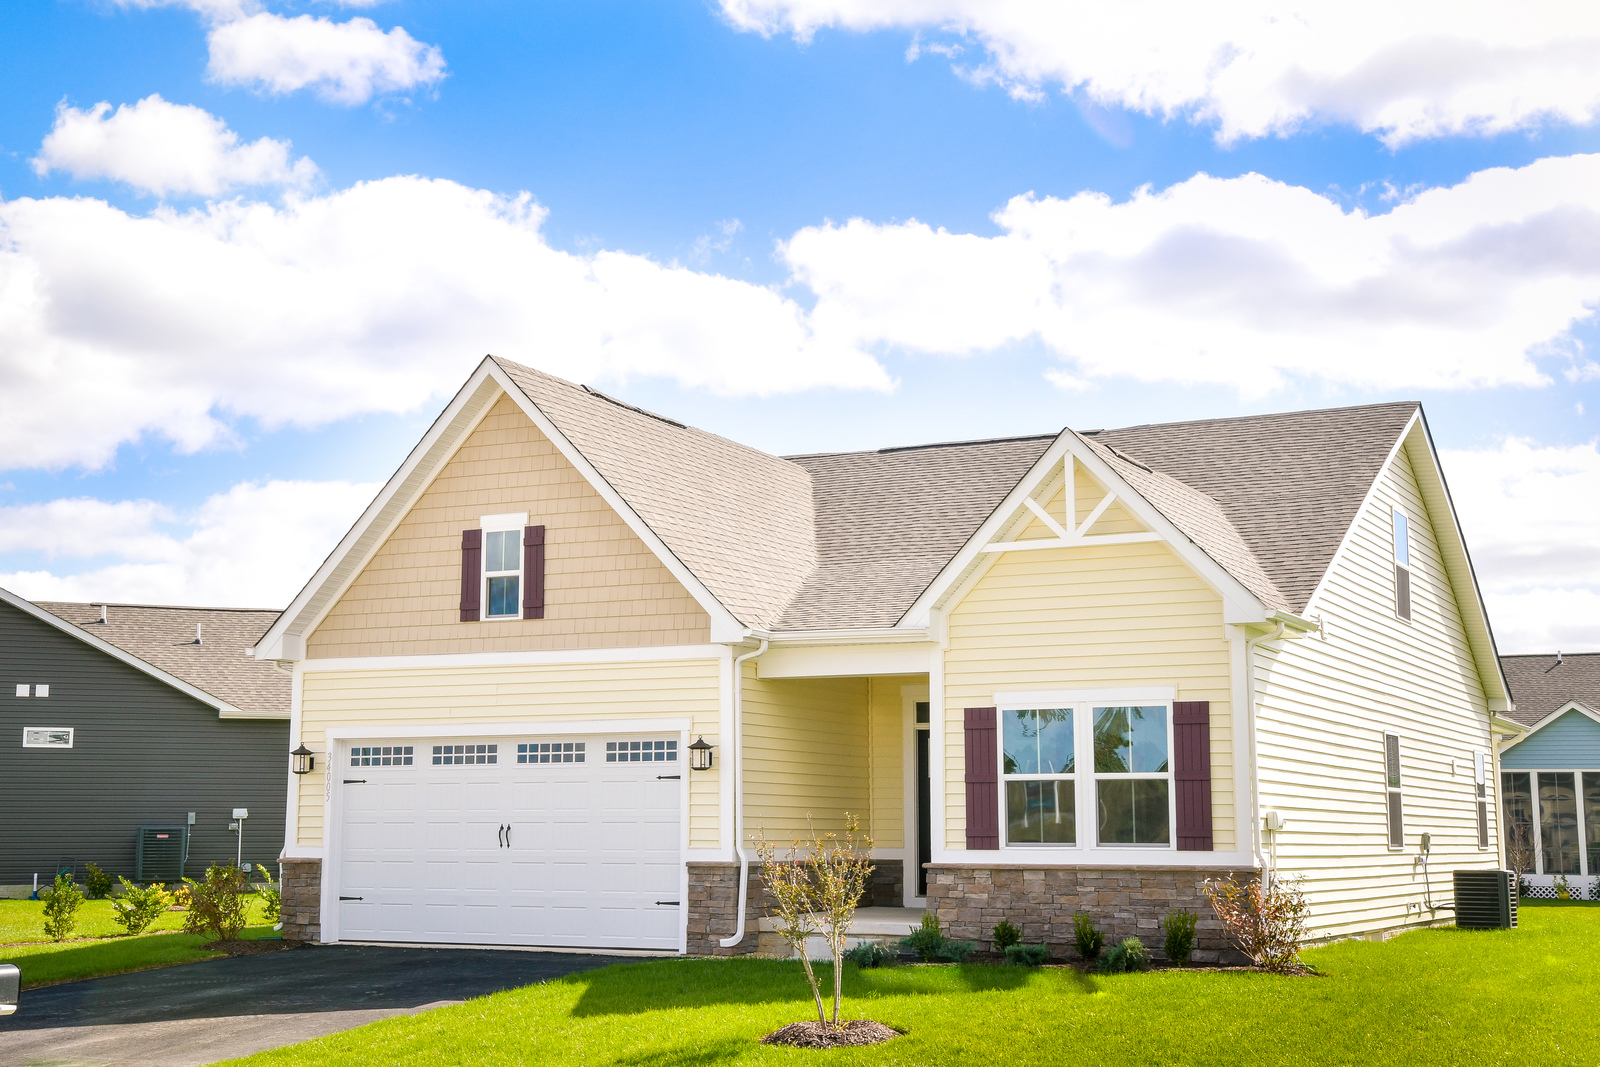 New bramanteranch home model for sale at boundary run in wenonah nj find your new home falaconquin